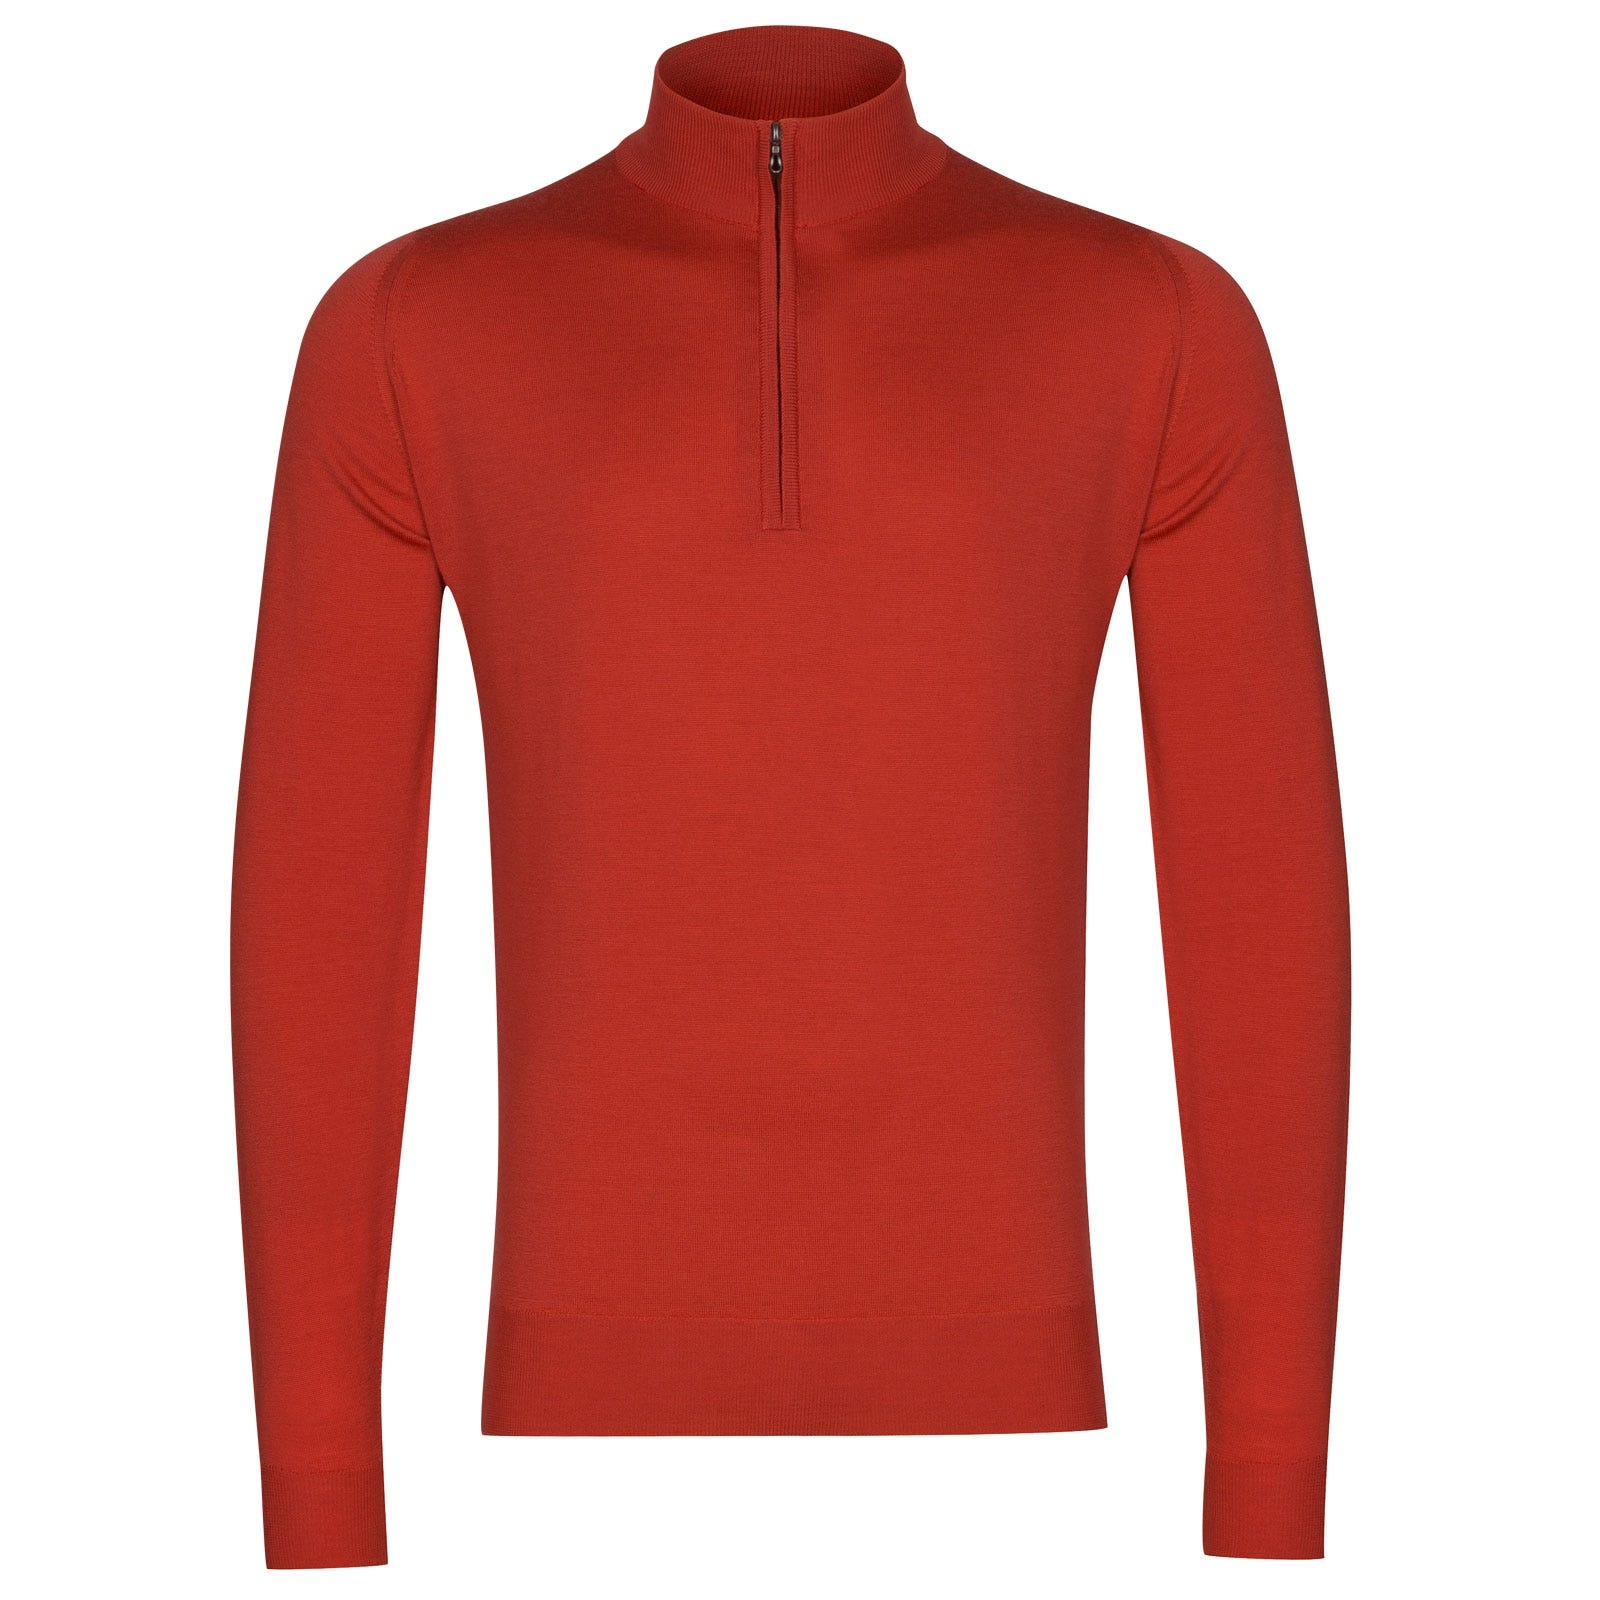 John Smedley Barrow in Red Admiral Pullover-SML